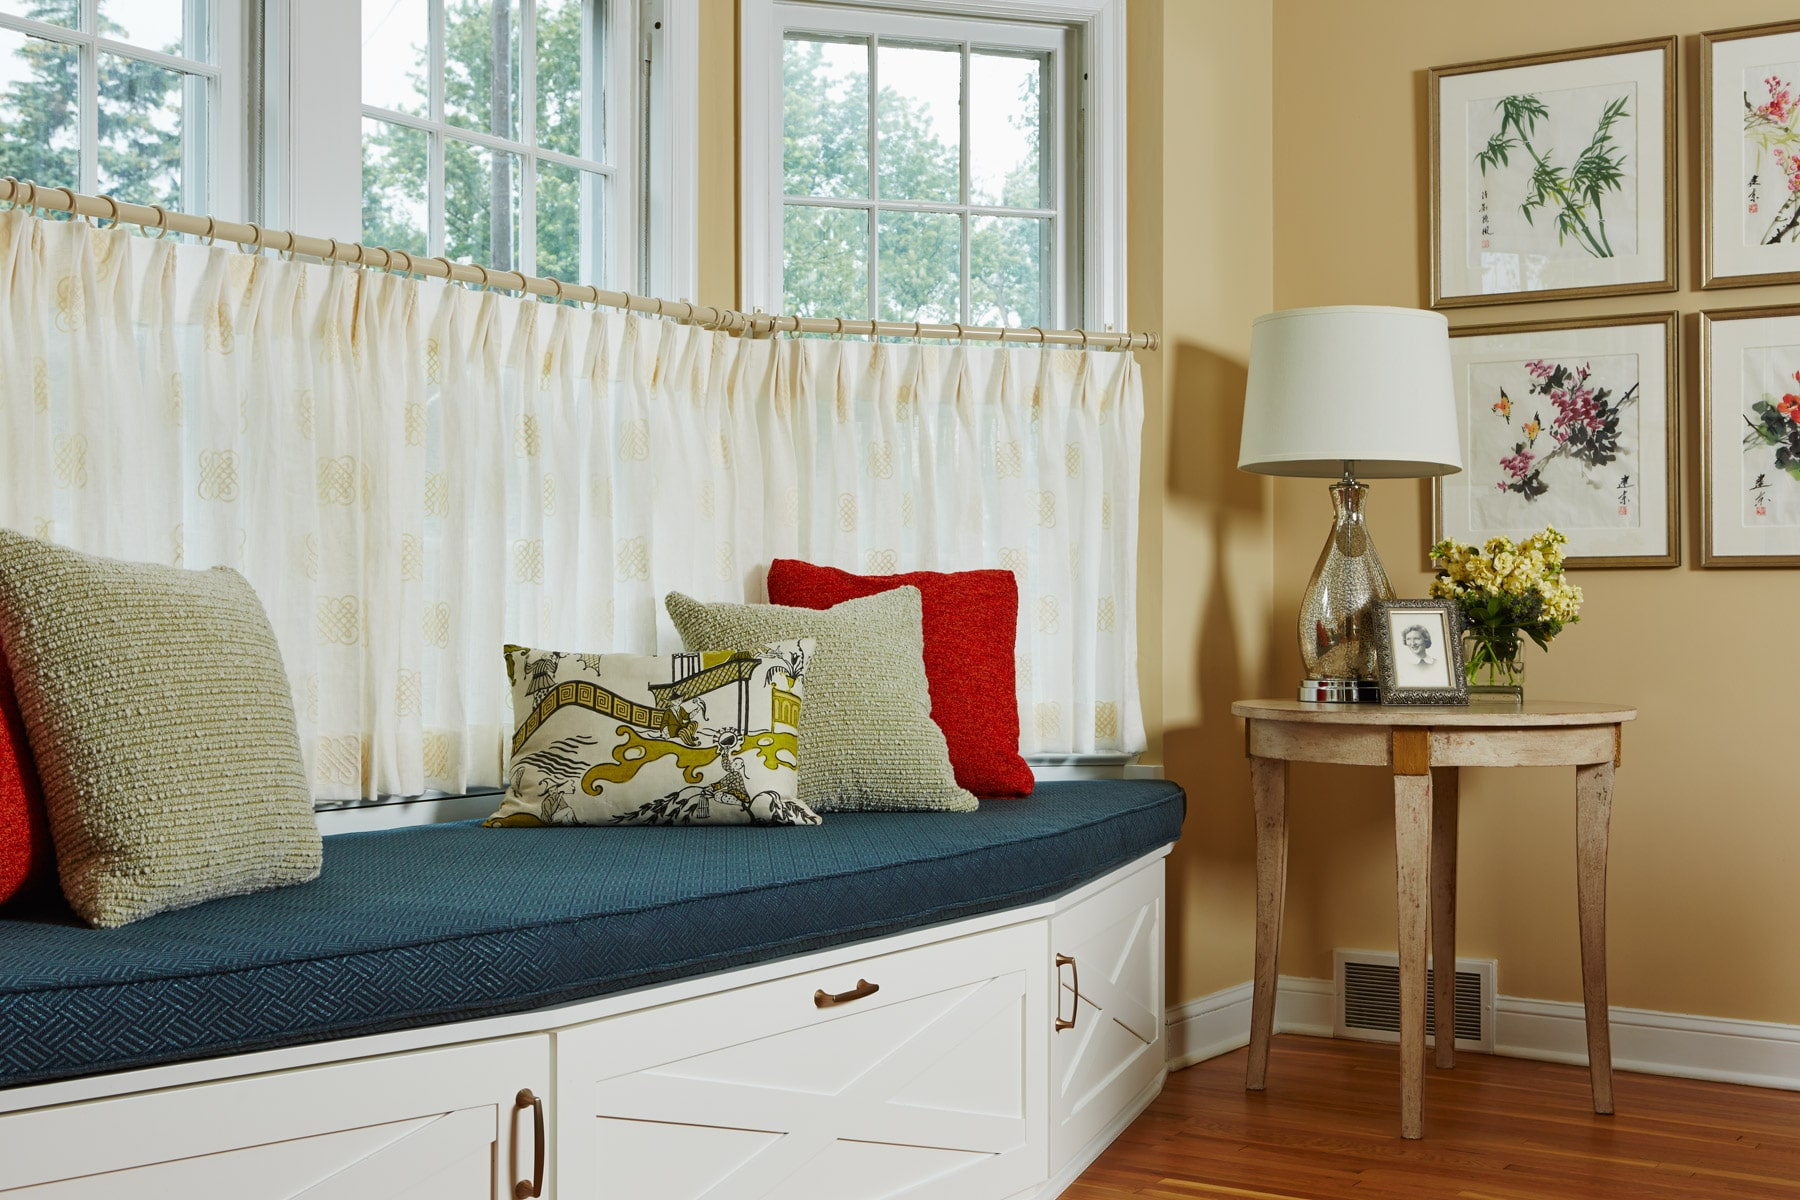 Custom designed built-in window seat with cafe curtains